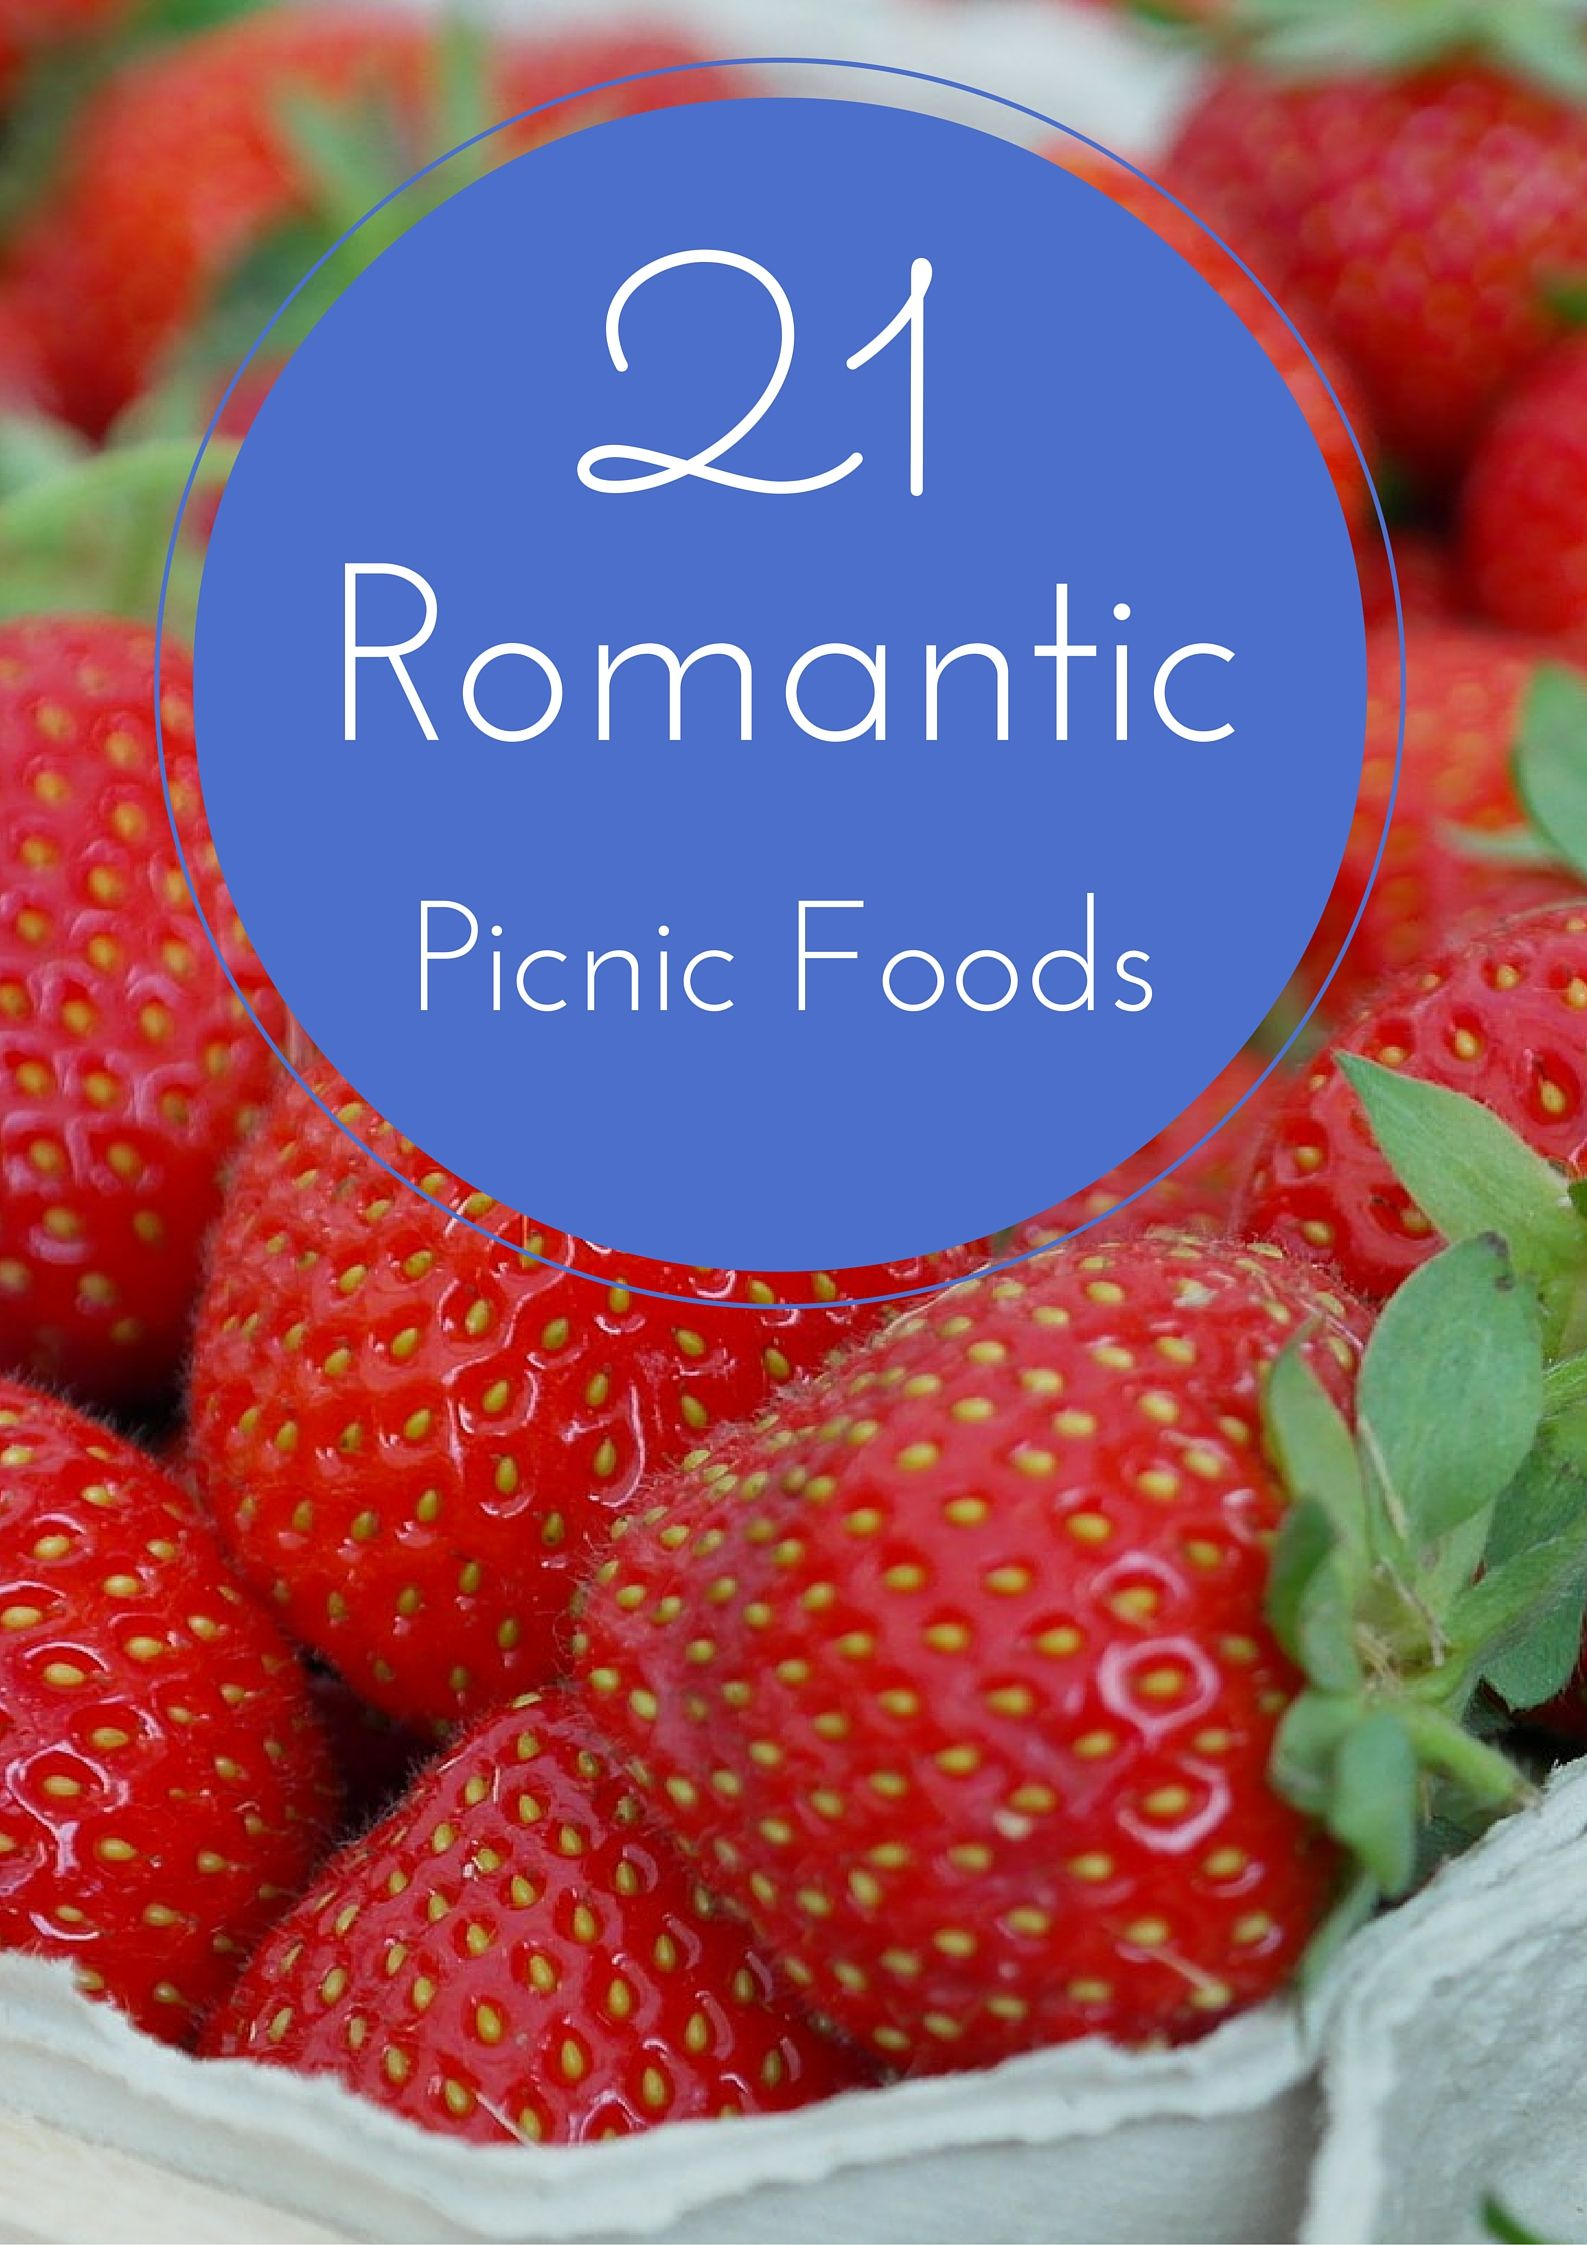 Romantische Hapjes The 21 Most Romantic Picnic Foods Set The Mood With These